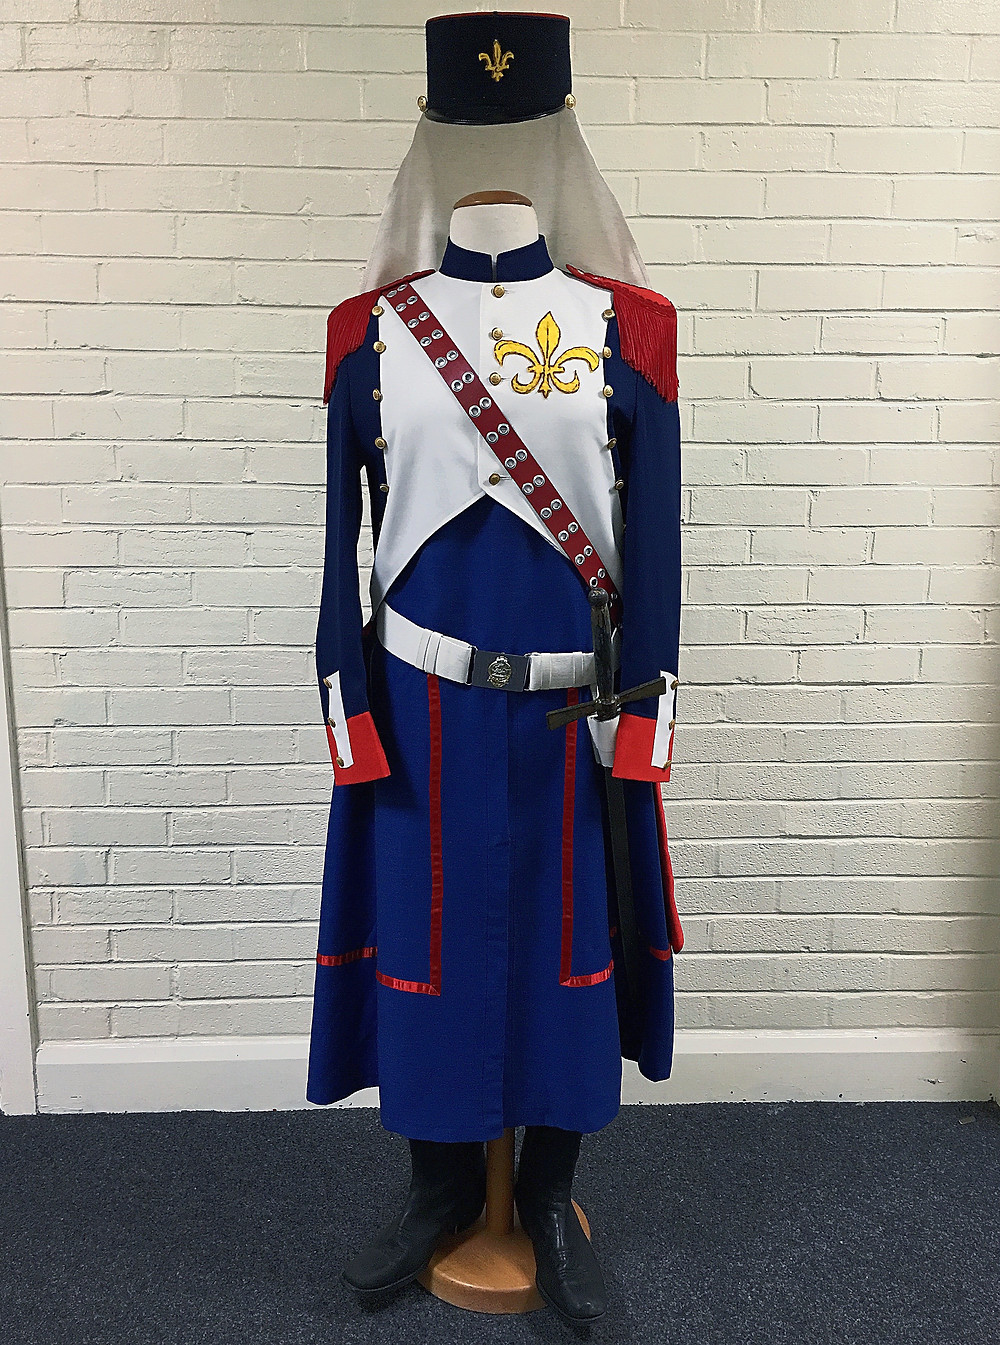 Spamalot - The French Foreign Legionnaire